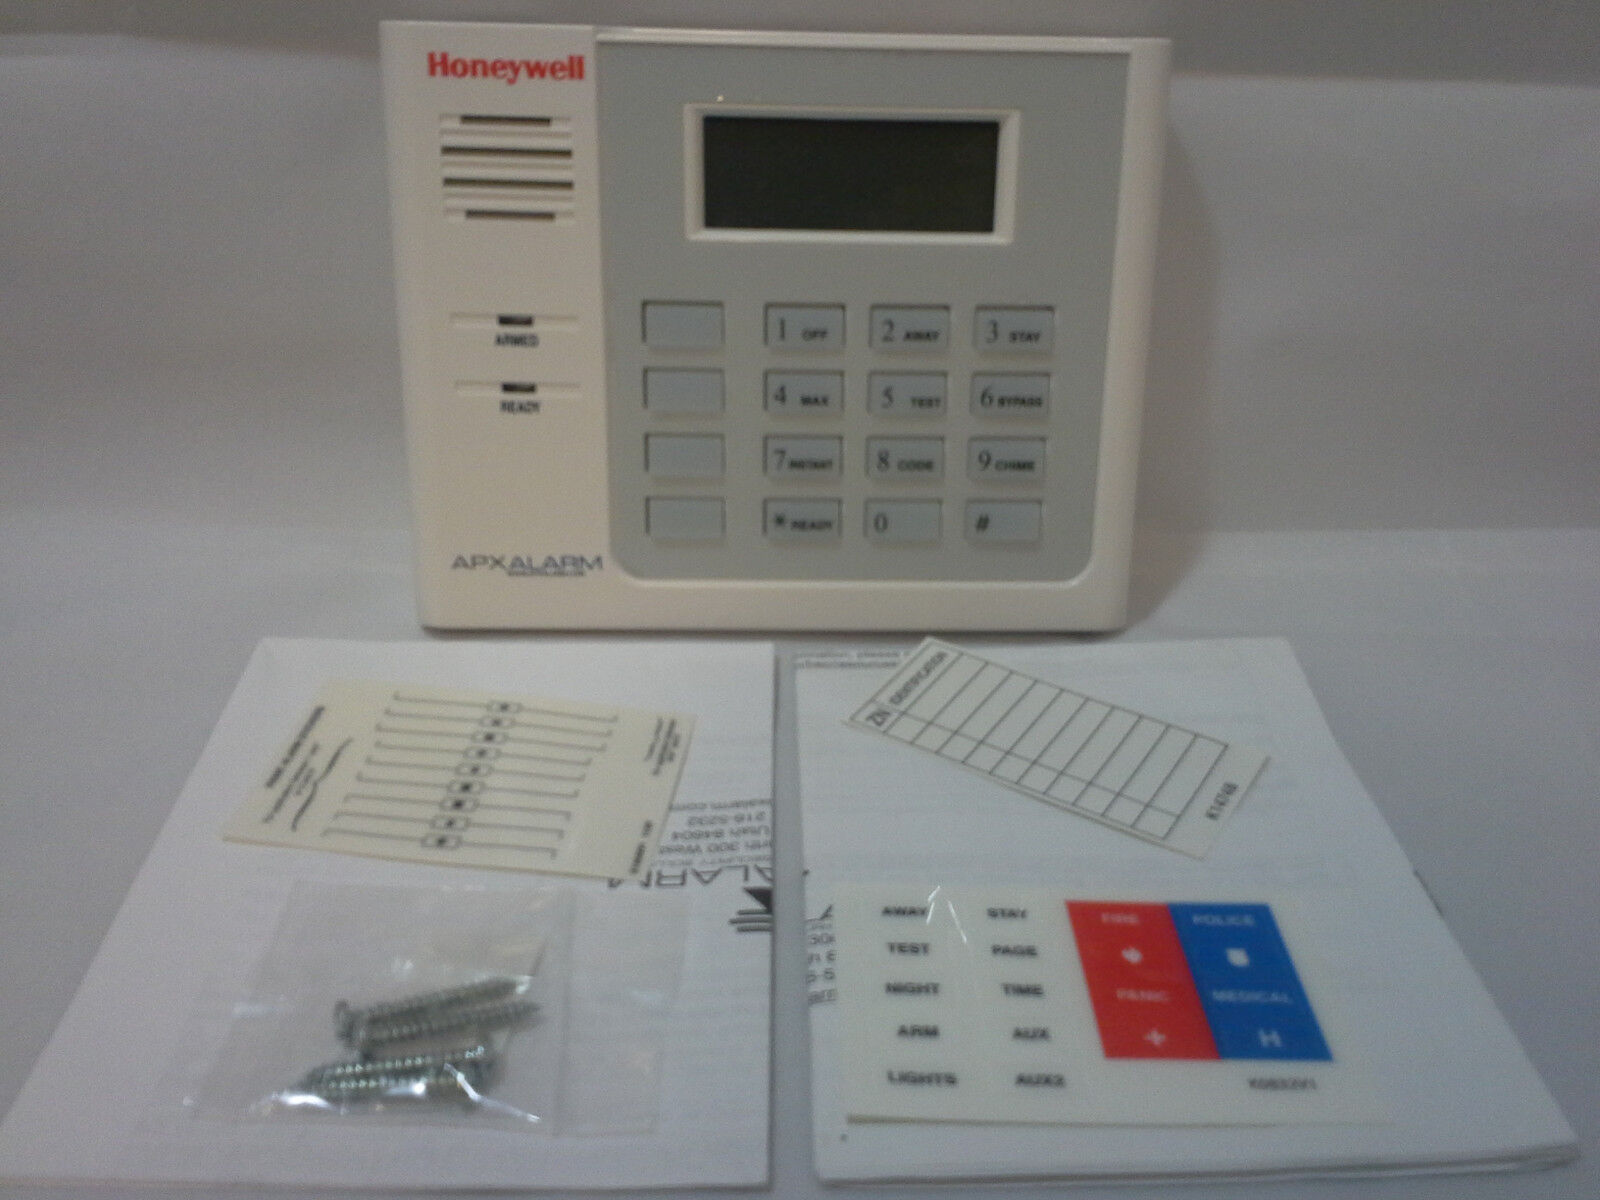 Apx honeywell ademco 6150rf keypad touchpad vista 15p 20p 21ip apx honeywell ademco 6150rf keypad touchpad vista 15p 20p 21ip wireless receiver item number 171384254879 sciox Image collections